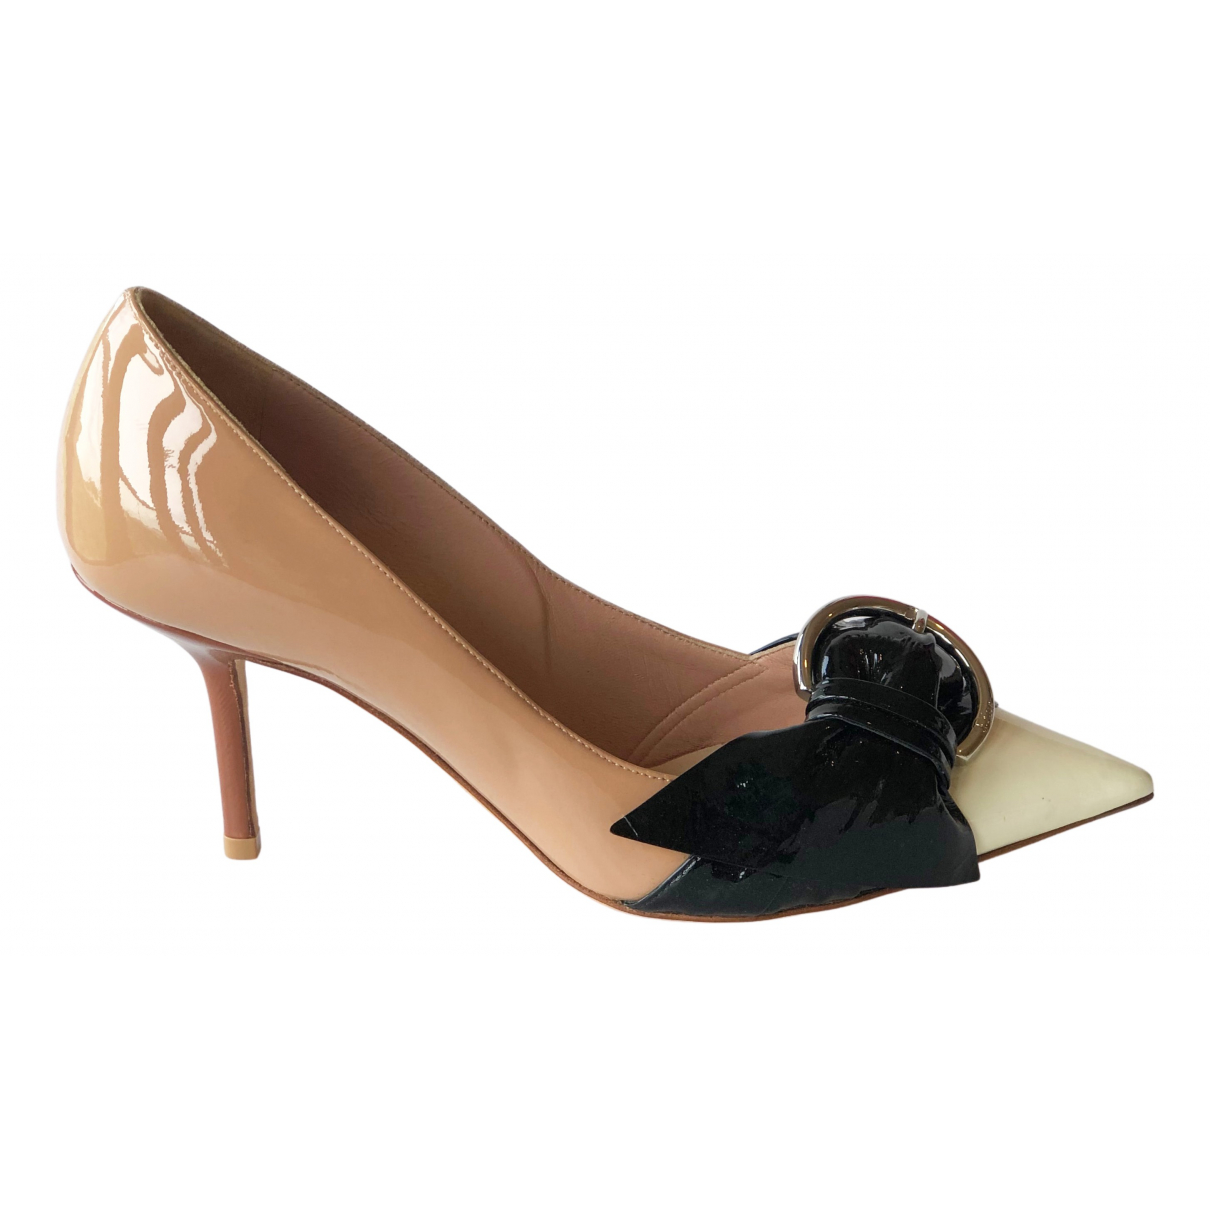 Dior \N Multicolour Patent leather Heels for Women 37 EU